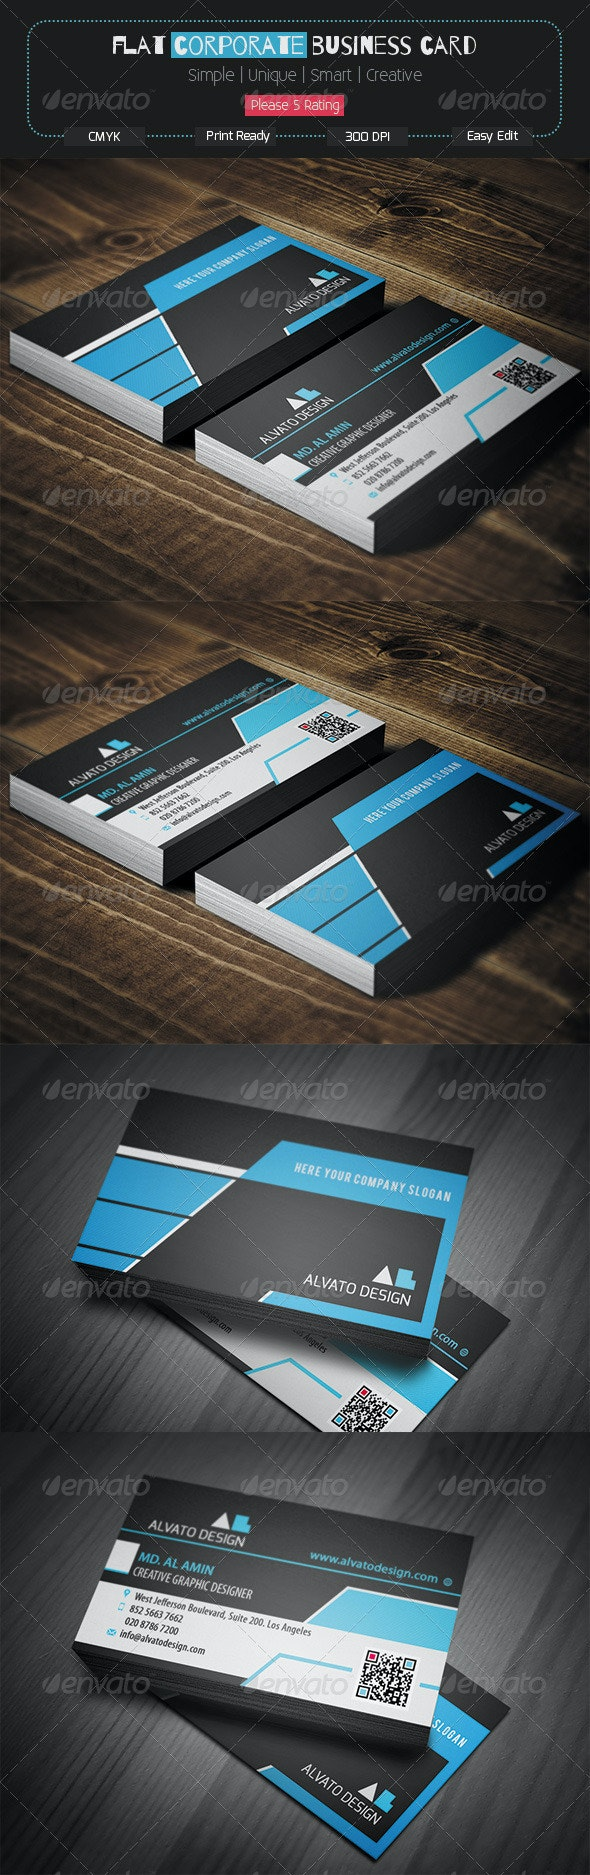 Flat Corporate Business Card - Corporate Business Cards